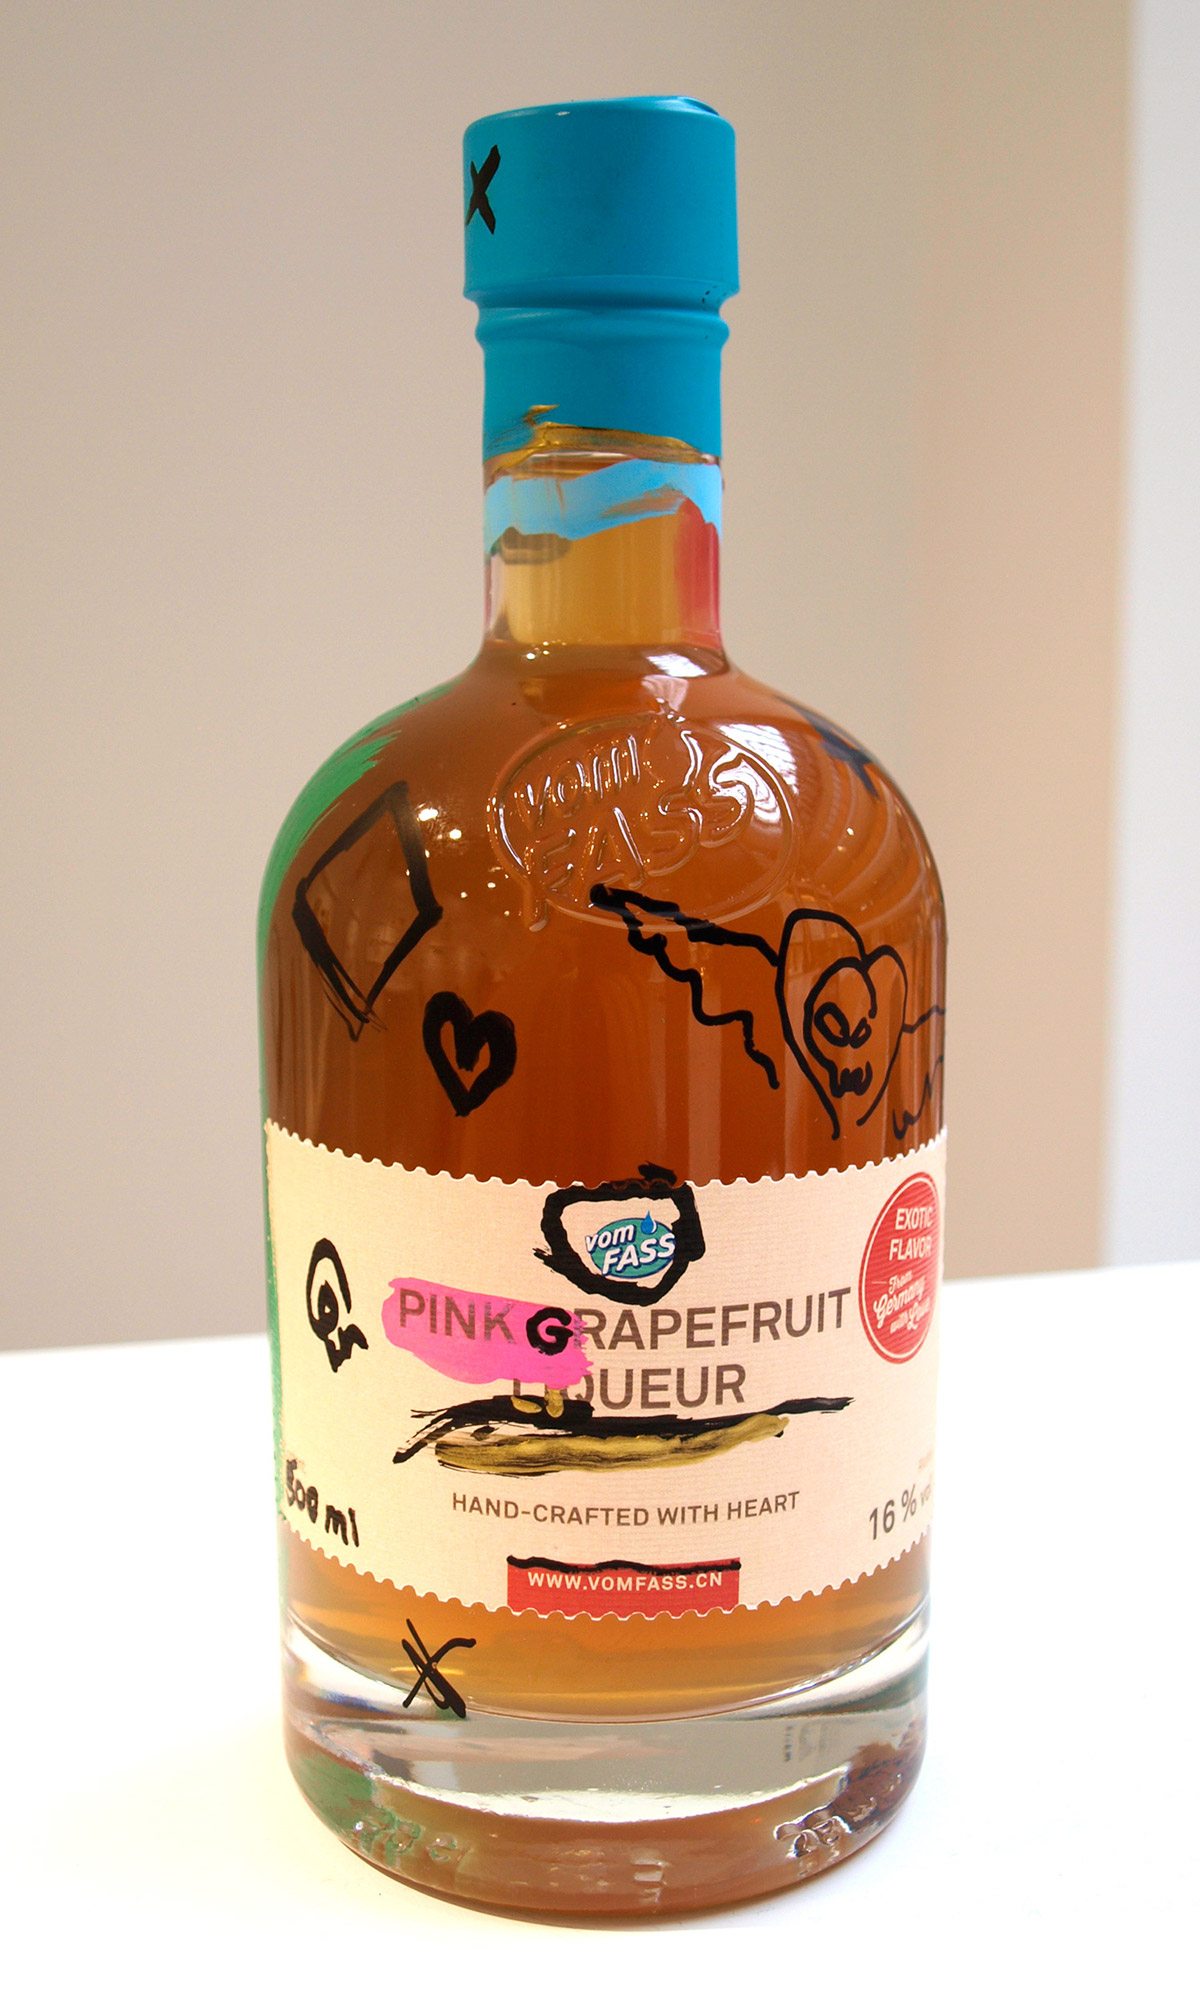 Vom Fass pink grapefruit liqueur bottle, hand painted, hand drawn illustration, alcohol packaging, drawing, label, doodle, loose illustration style, design by Ben Tallon artist UK